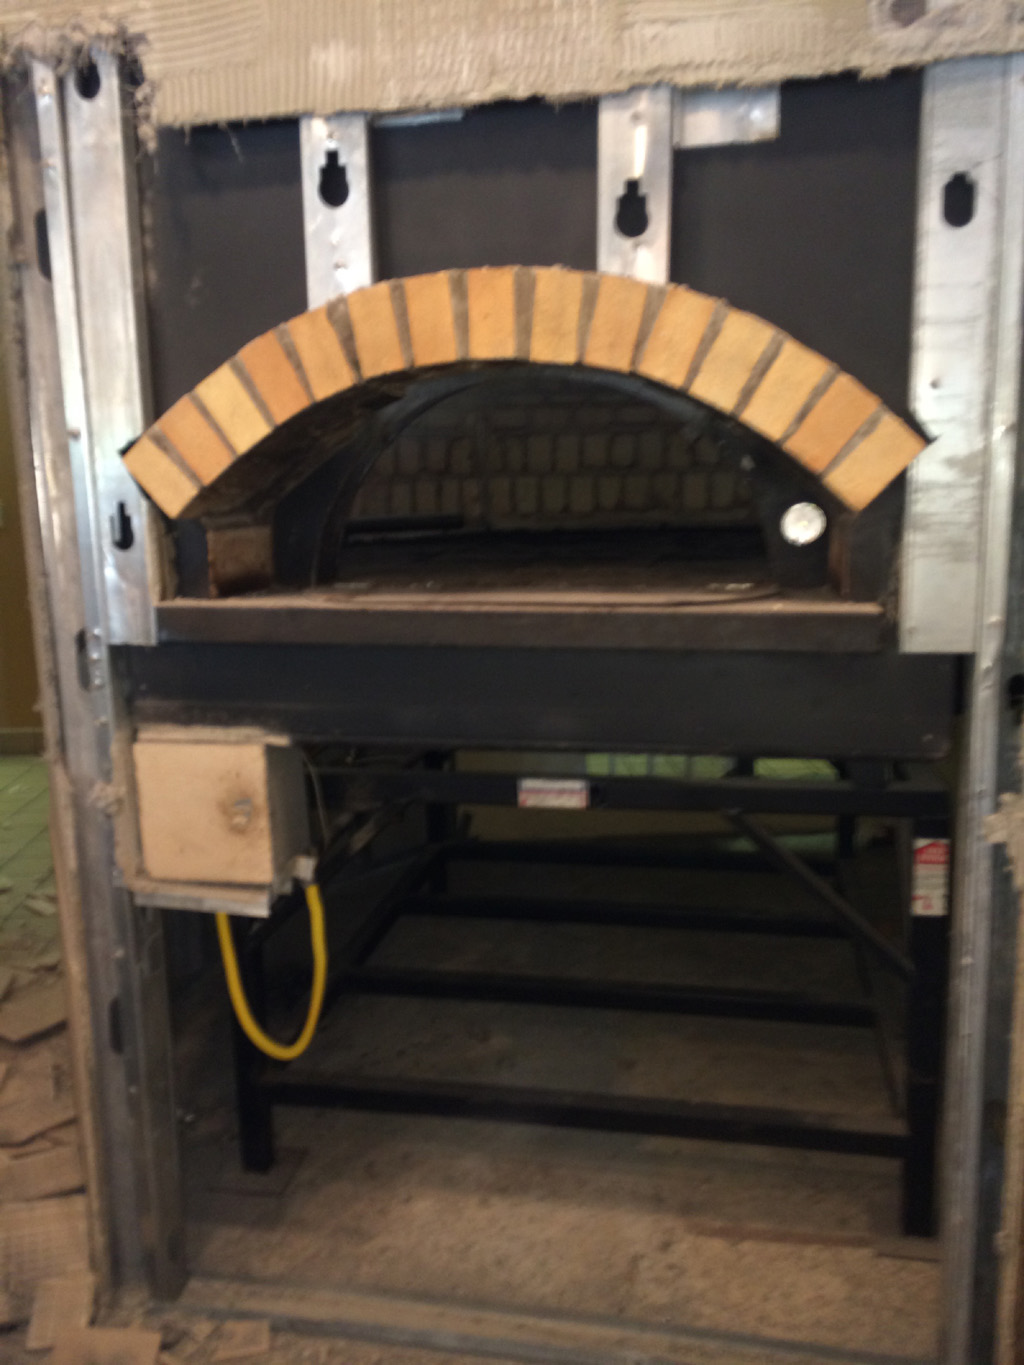 Used Pizza Ovens For Sale >> Used Pizza Oven Bravo Gas Fired Brick Brv 180 Pete S Restaurant